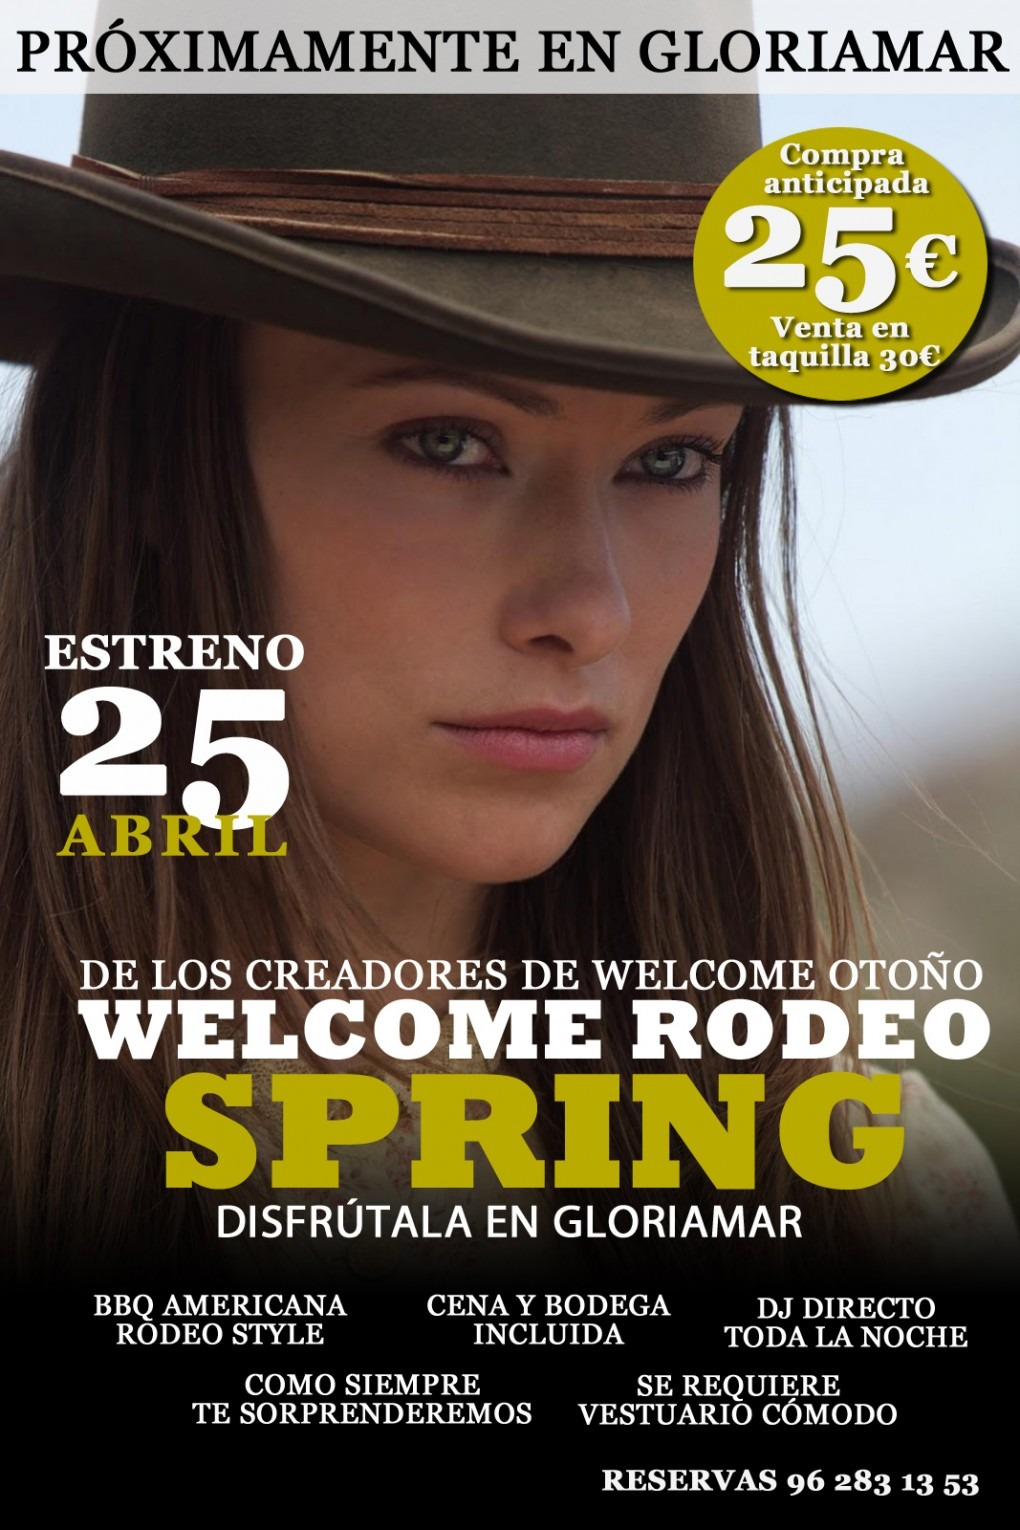 Fiesta Rodeo en Gloriamar